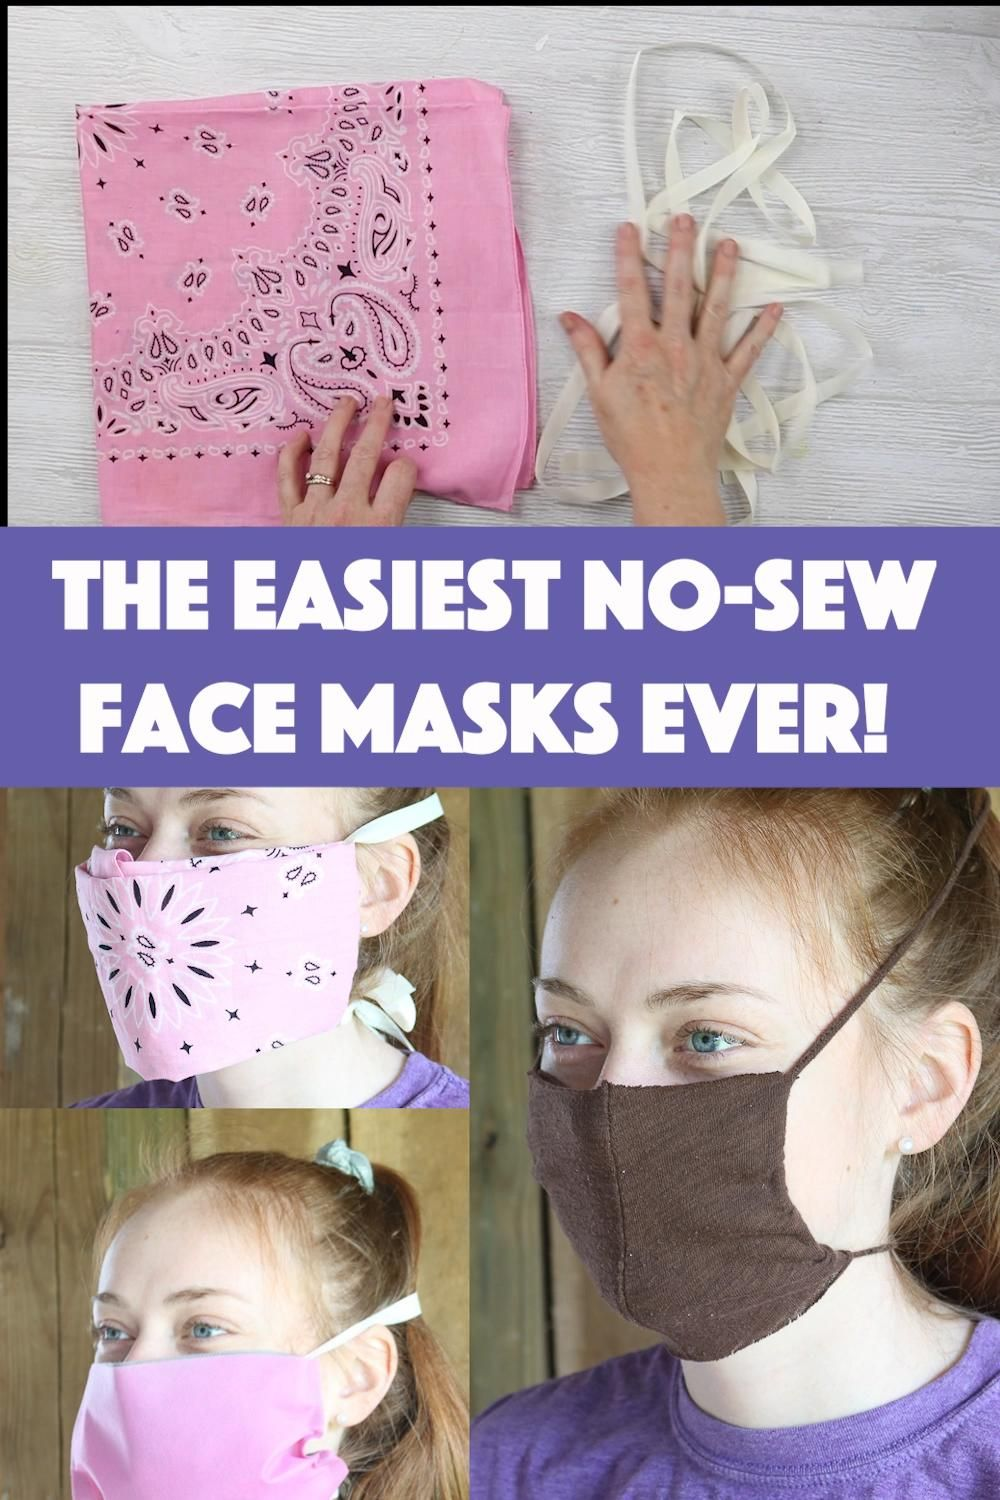 The Easiest No-Sew Face Masks Ever